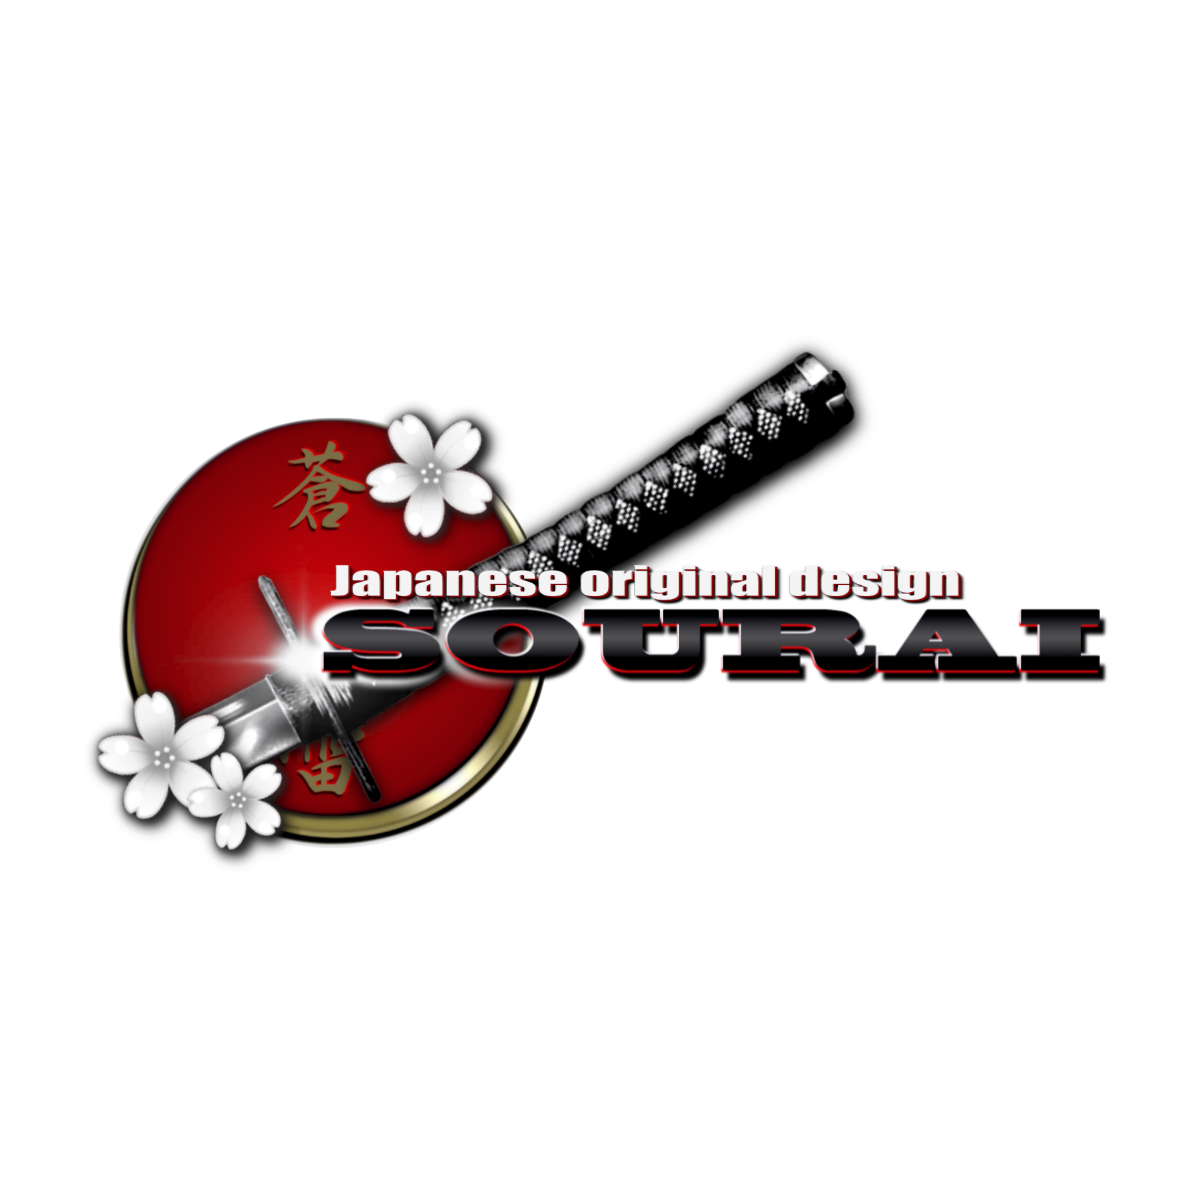 Japanese original design 蒼雷